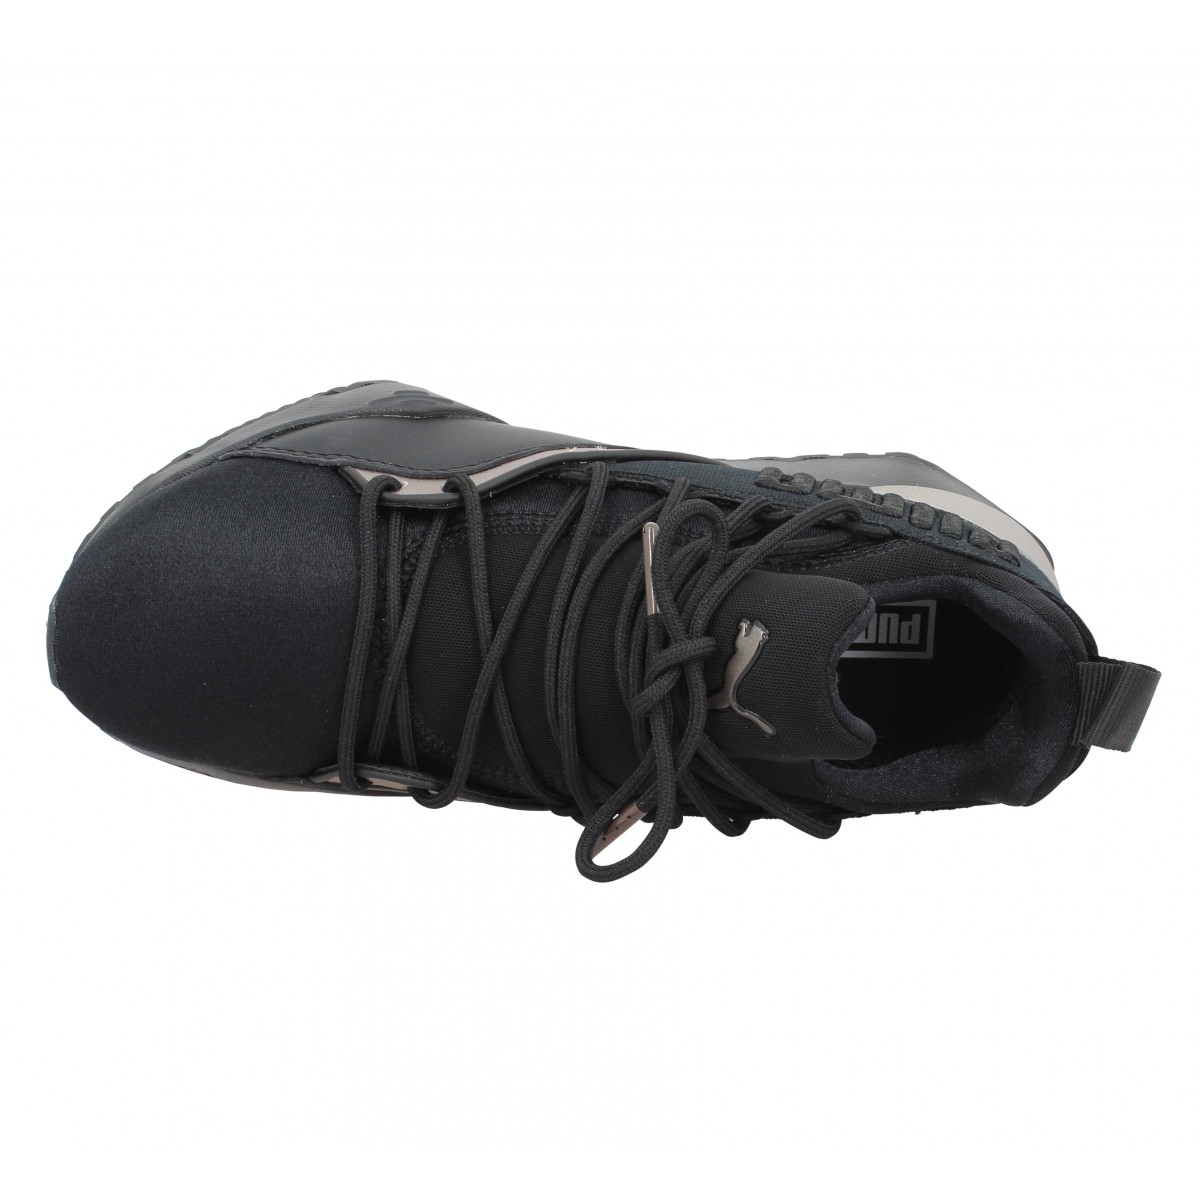 Puma Fanny Luxe Muse Femme Wq1wxxzig Maia Noir Chaussures Toile TwfBOcPEqx